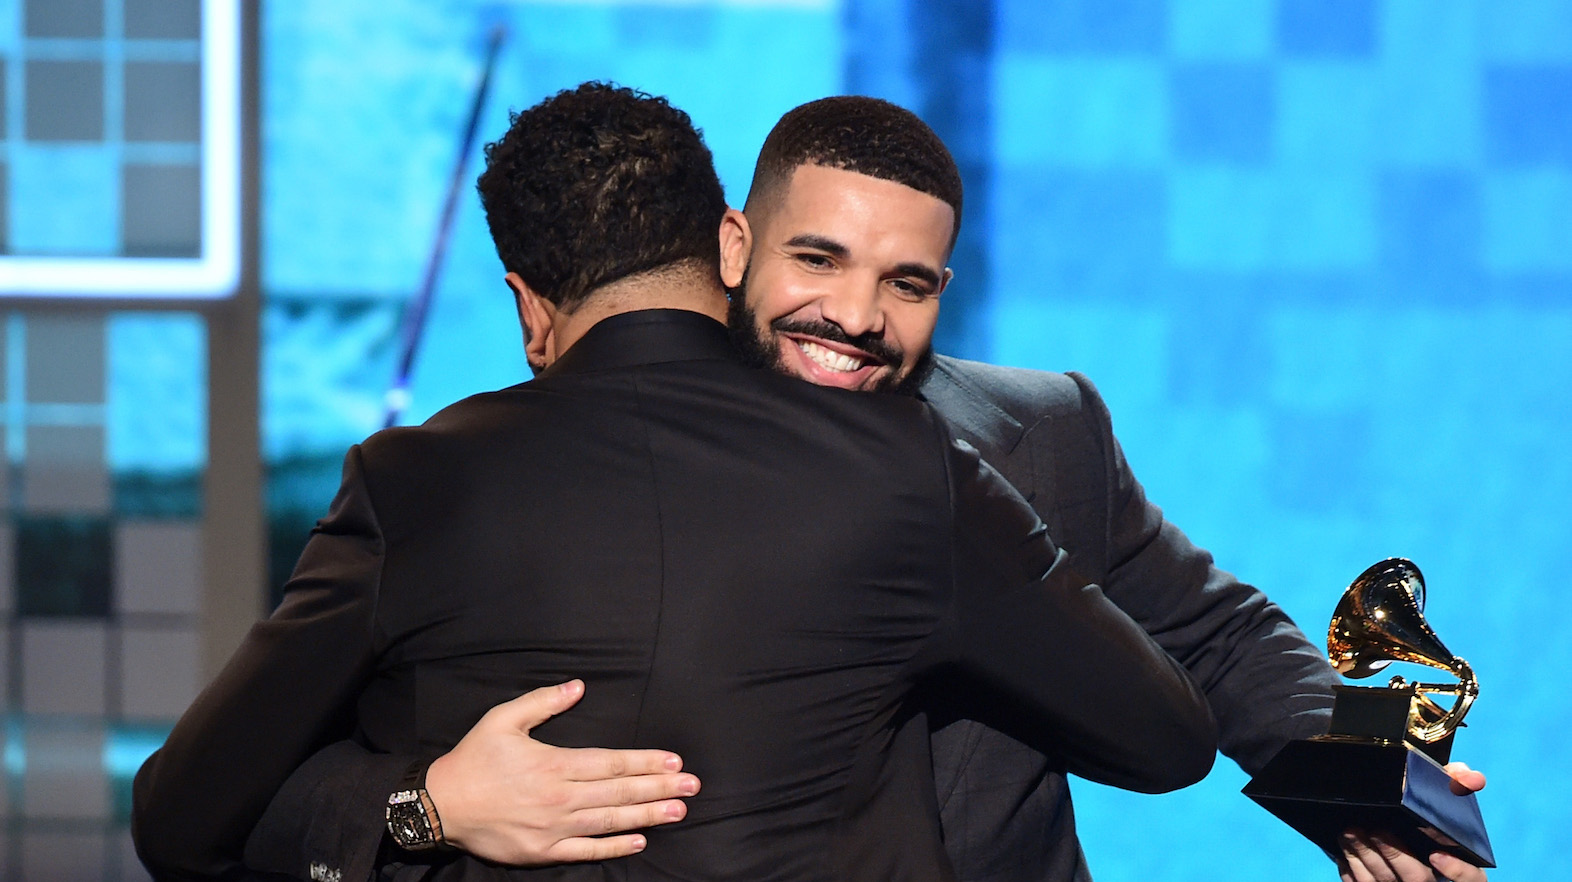 Twitter Erupts After the Grammys Seemingly Cut Off Drake's Emotional Speech